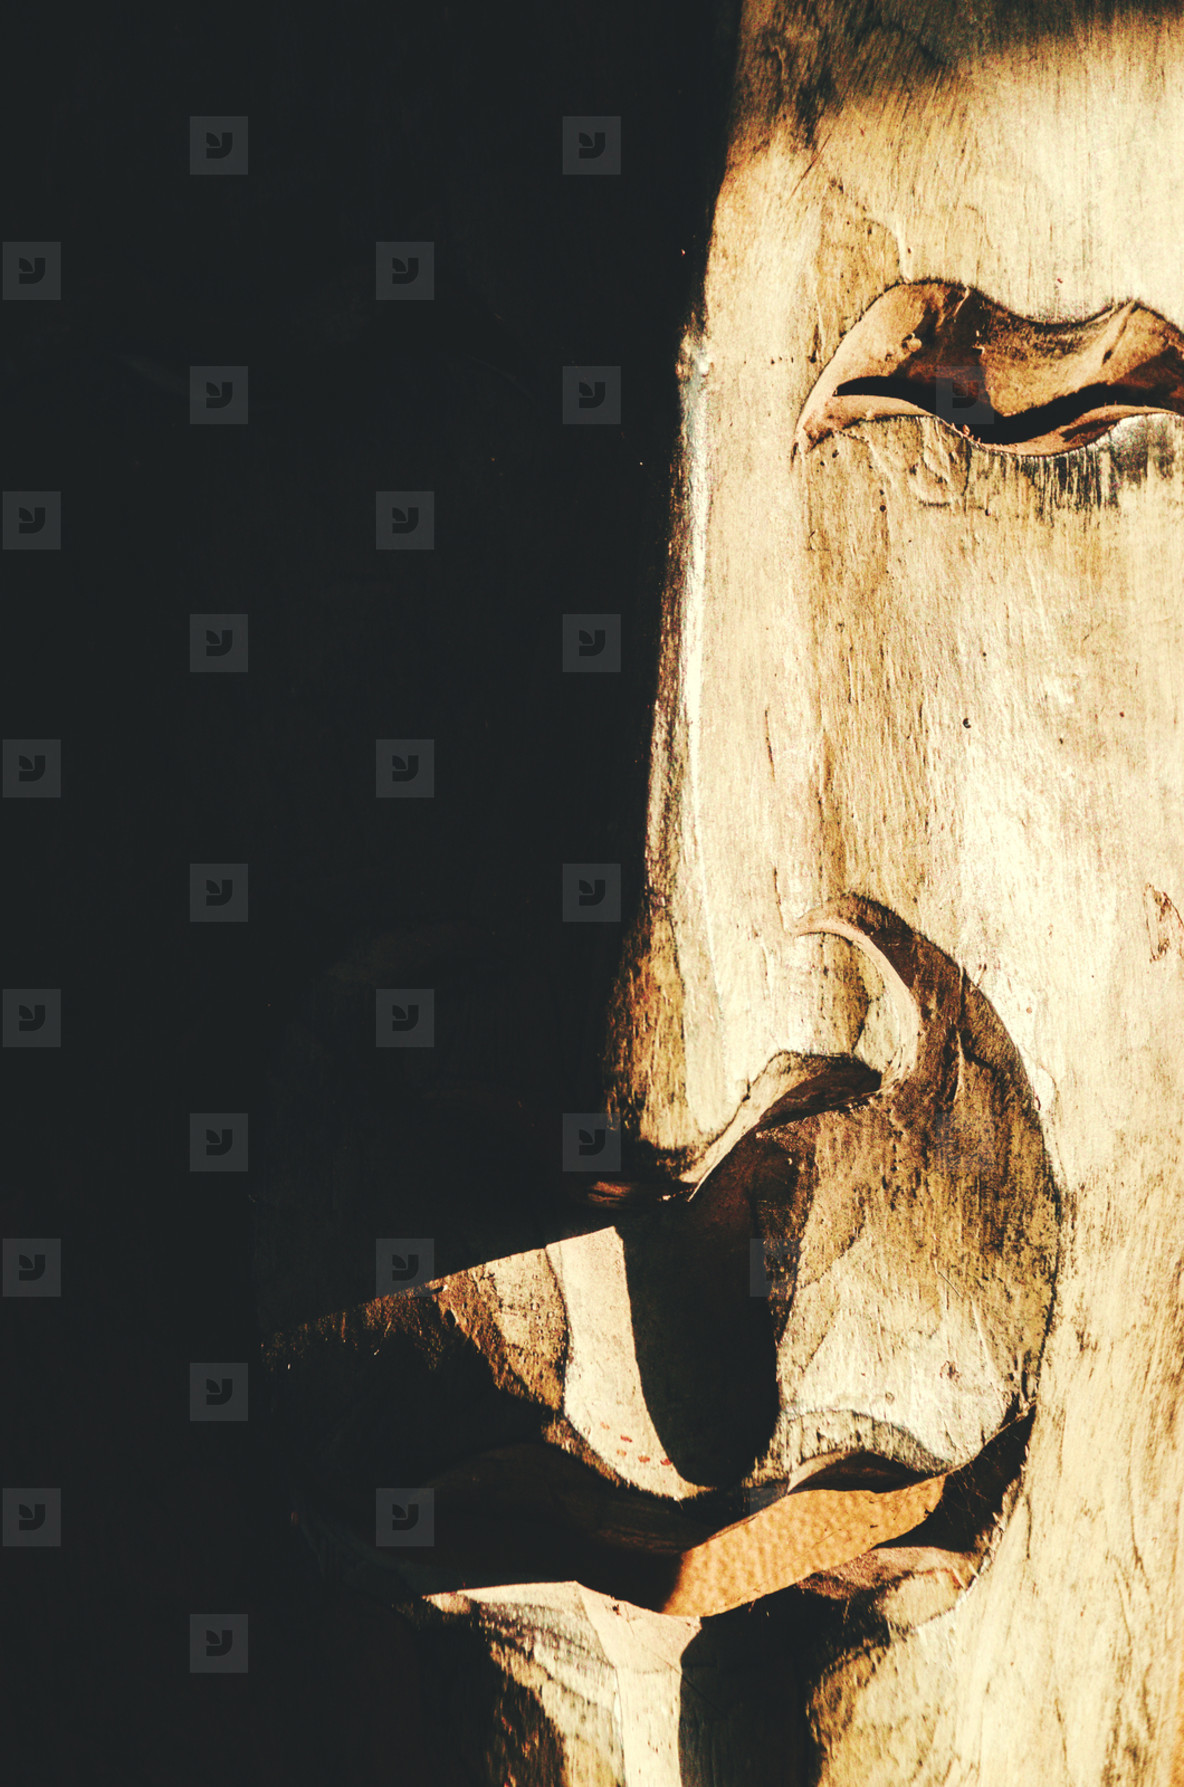 Photos - Wooden Mask On The Wall - YouWorkForThem